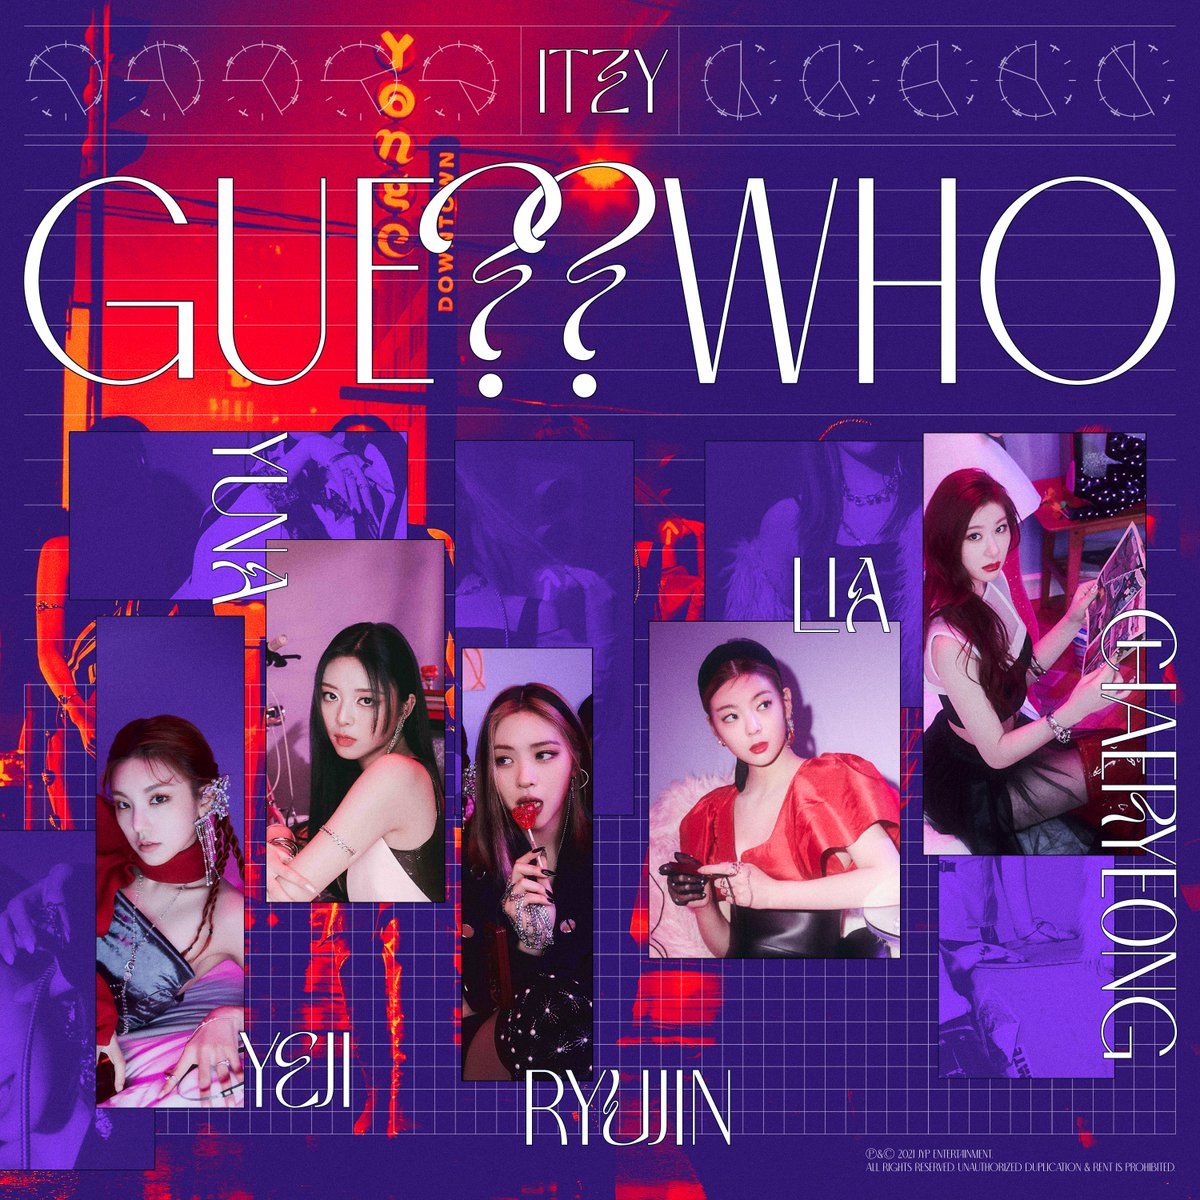 """I will read your mind and guess your favorites movies. Itzy On Twitter Itzy Guess Who Released Online Melon Https T Co 2ftqpcv6qx Genie Https T Co S1atcpcvx9 Bugs Https T Co Ag7ssth0xy Itzy ̞ˆì§€ Itzyofficial Midzy ˯¿ì§€ Guesswho Itzy Guesswho ˧ˆí""""¼ì•"""" Inthemorning Https T Co G3ev6newqh"""